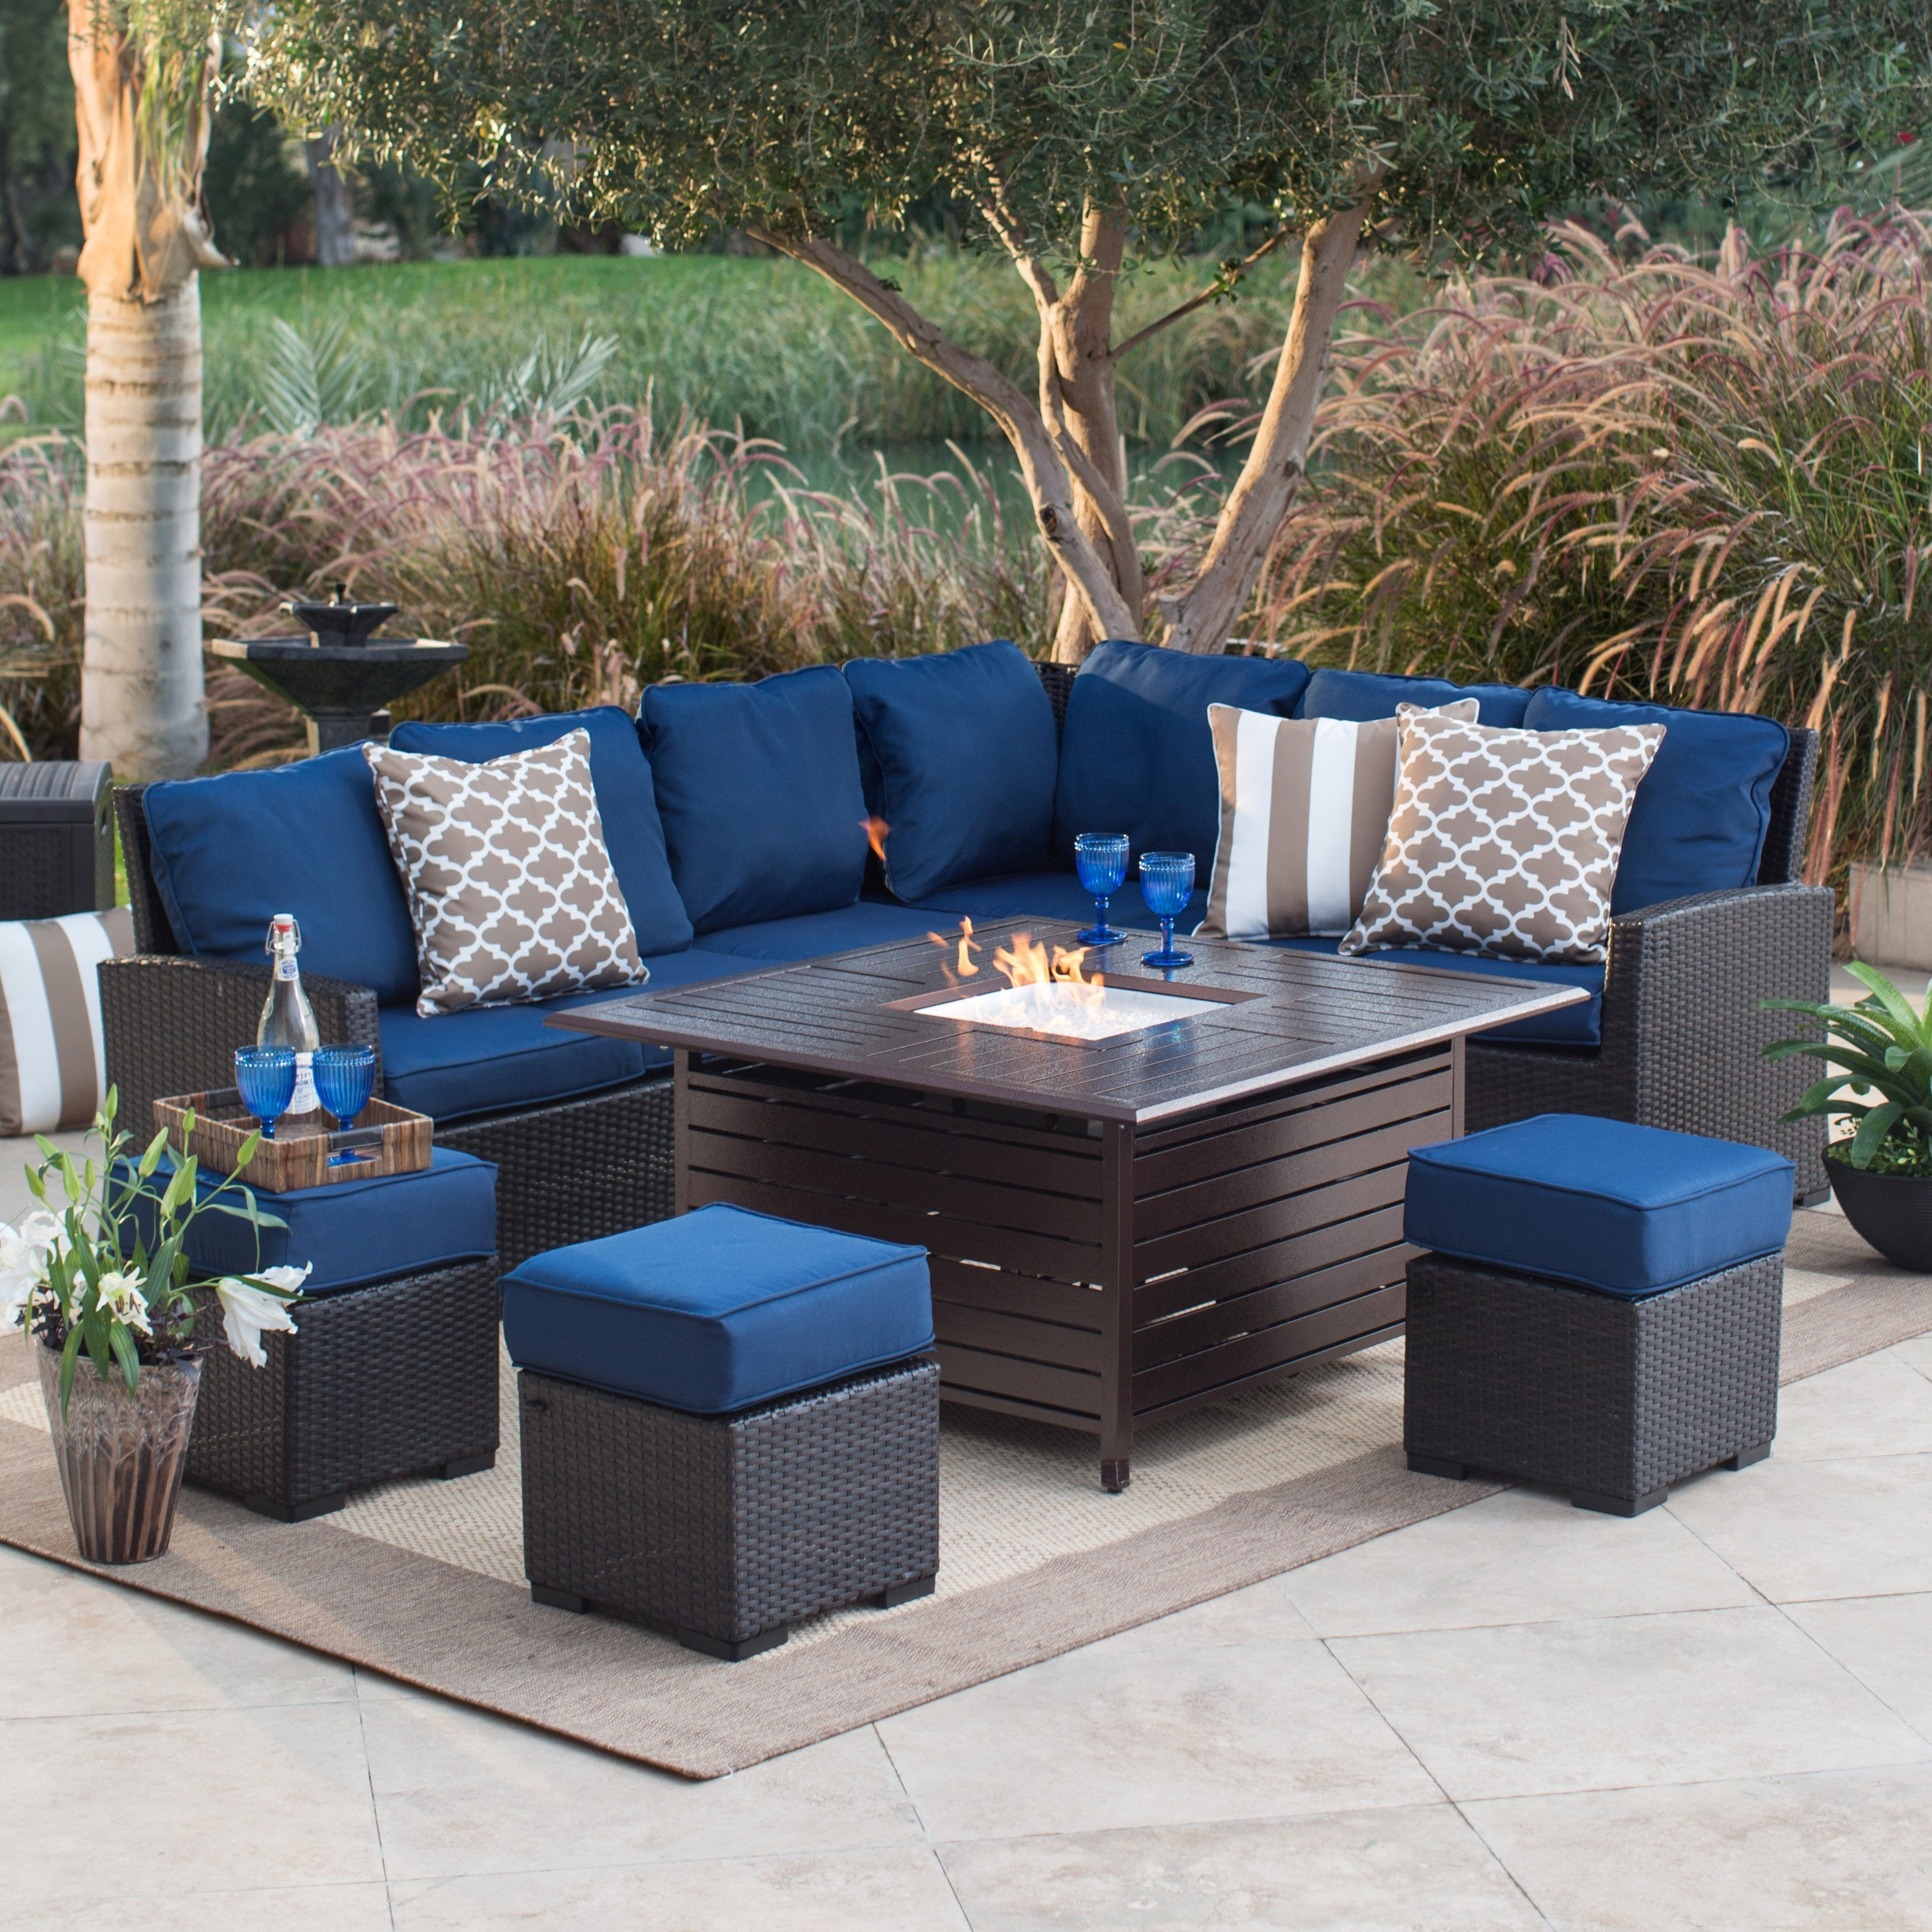 Patio Conversation Sets With Fire Pit With Newest Fire Pit Patio Sets Hayneedle Chat Set Cover Canada Captivating (View 12 of 15)